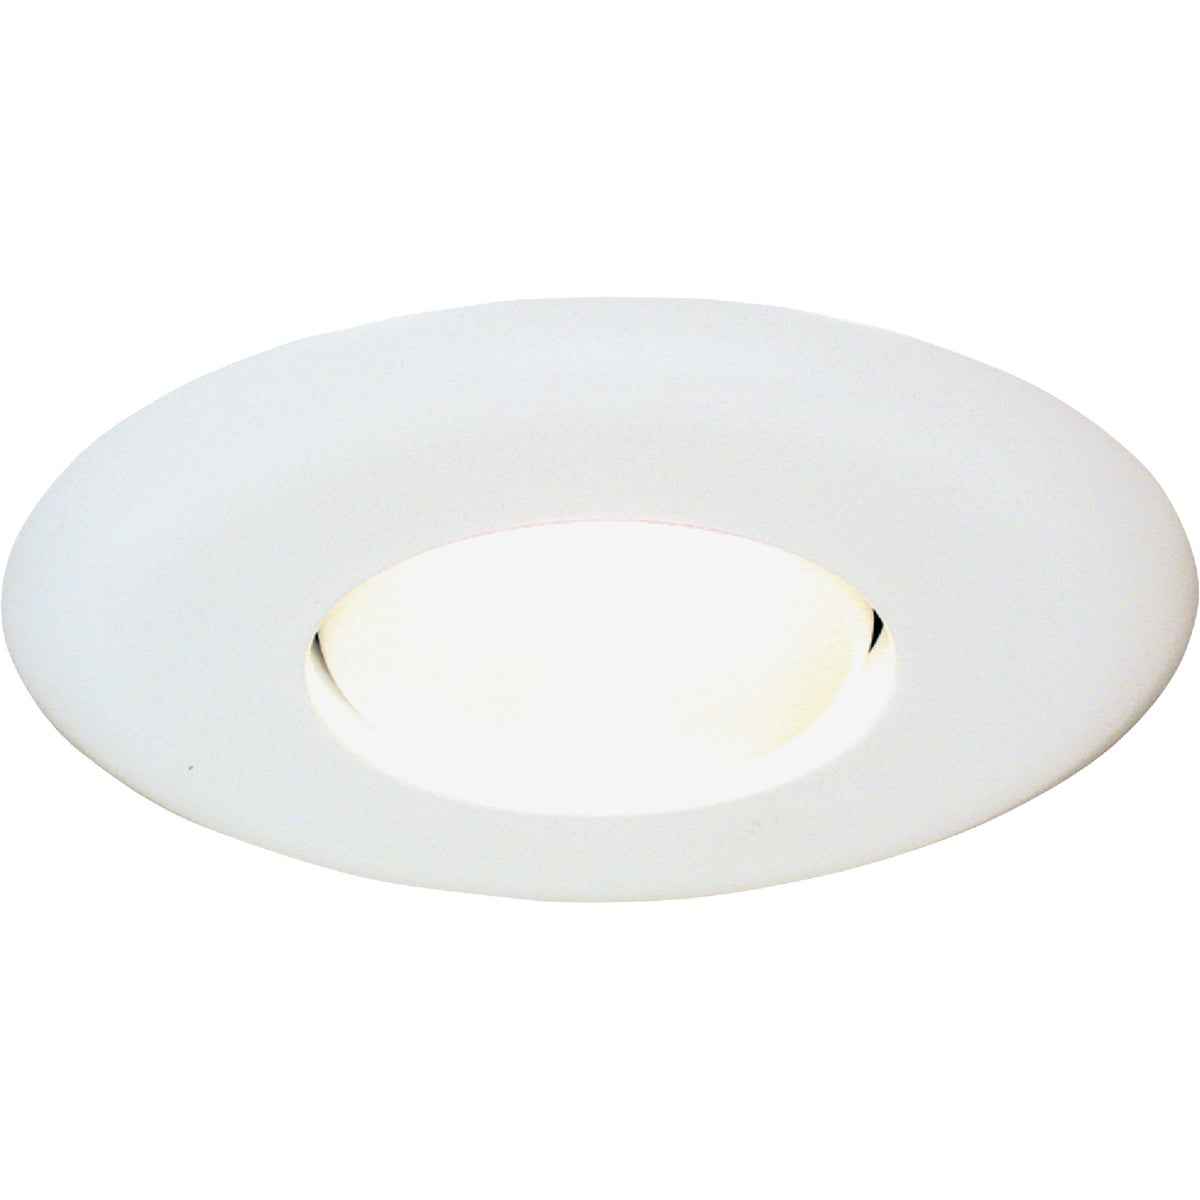 WHT RECESS FIXTURE TRIM - TR30W by Philips Consumer Lum